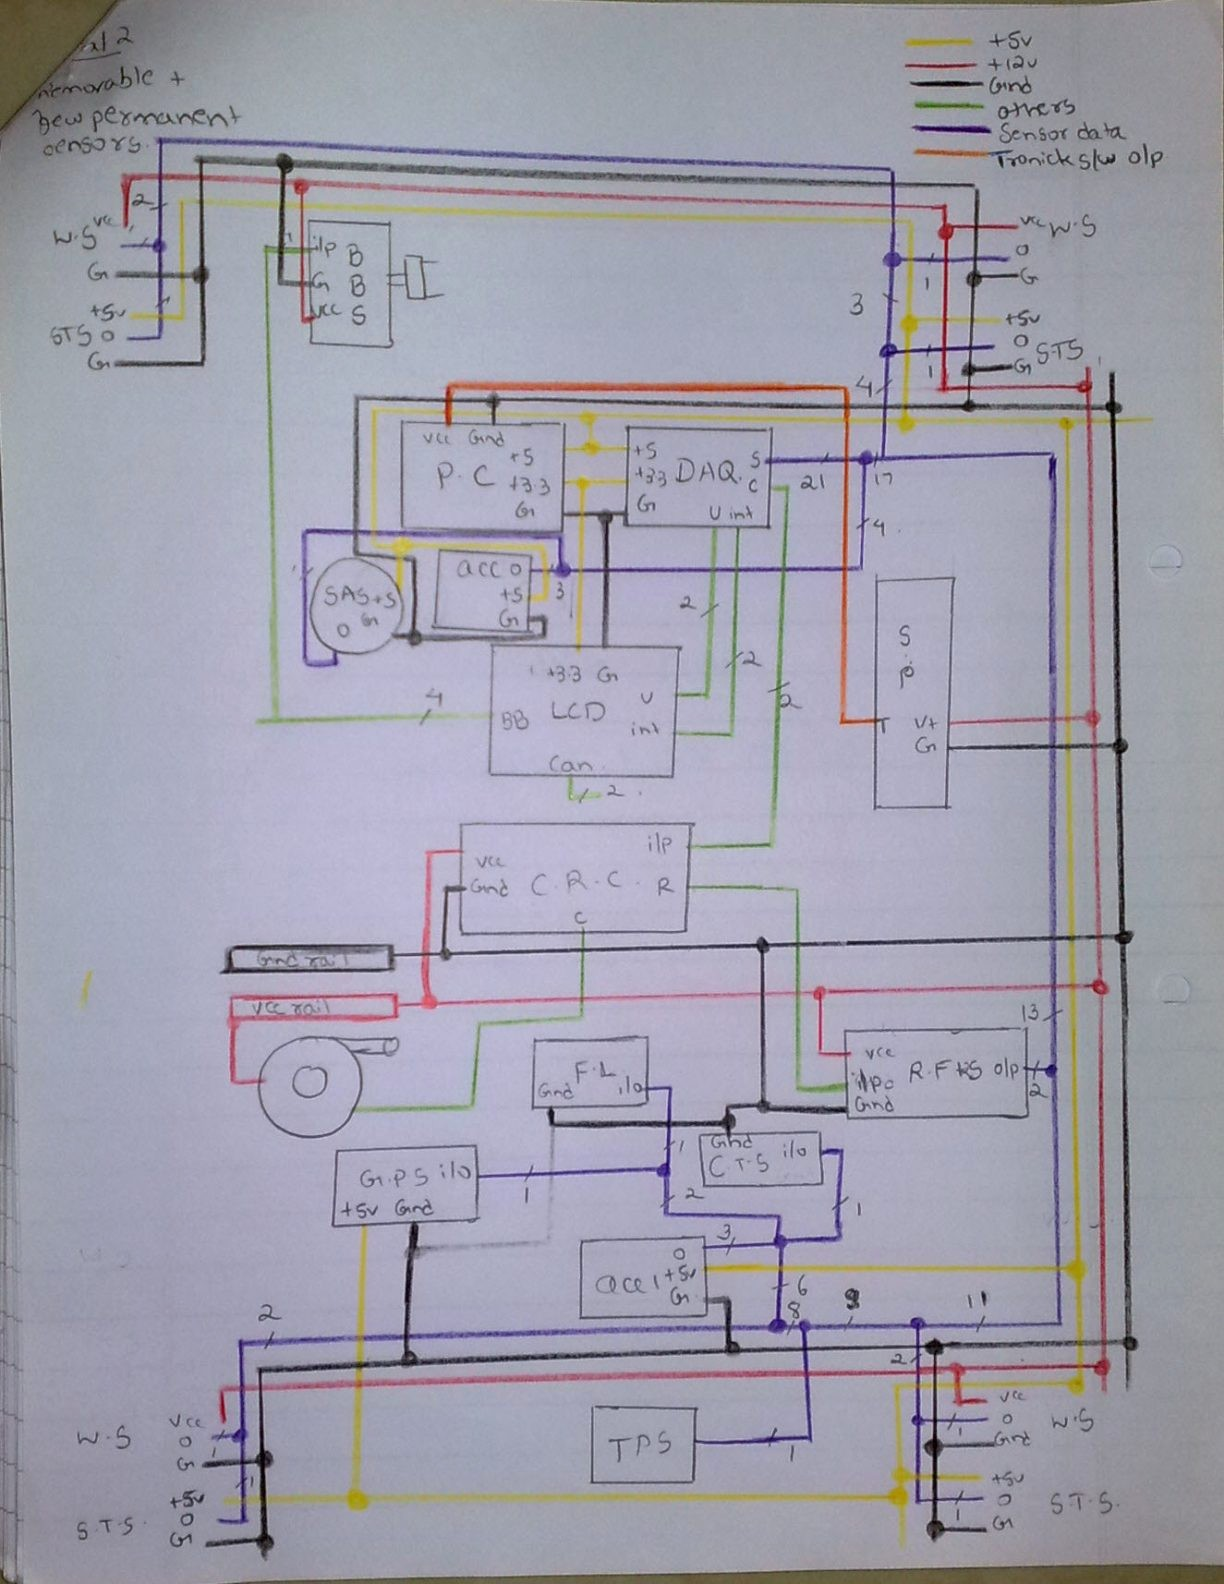 hight resolution of drag race car wiring diagram marine battery disconnect switch wiring diagram and forum discussion